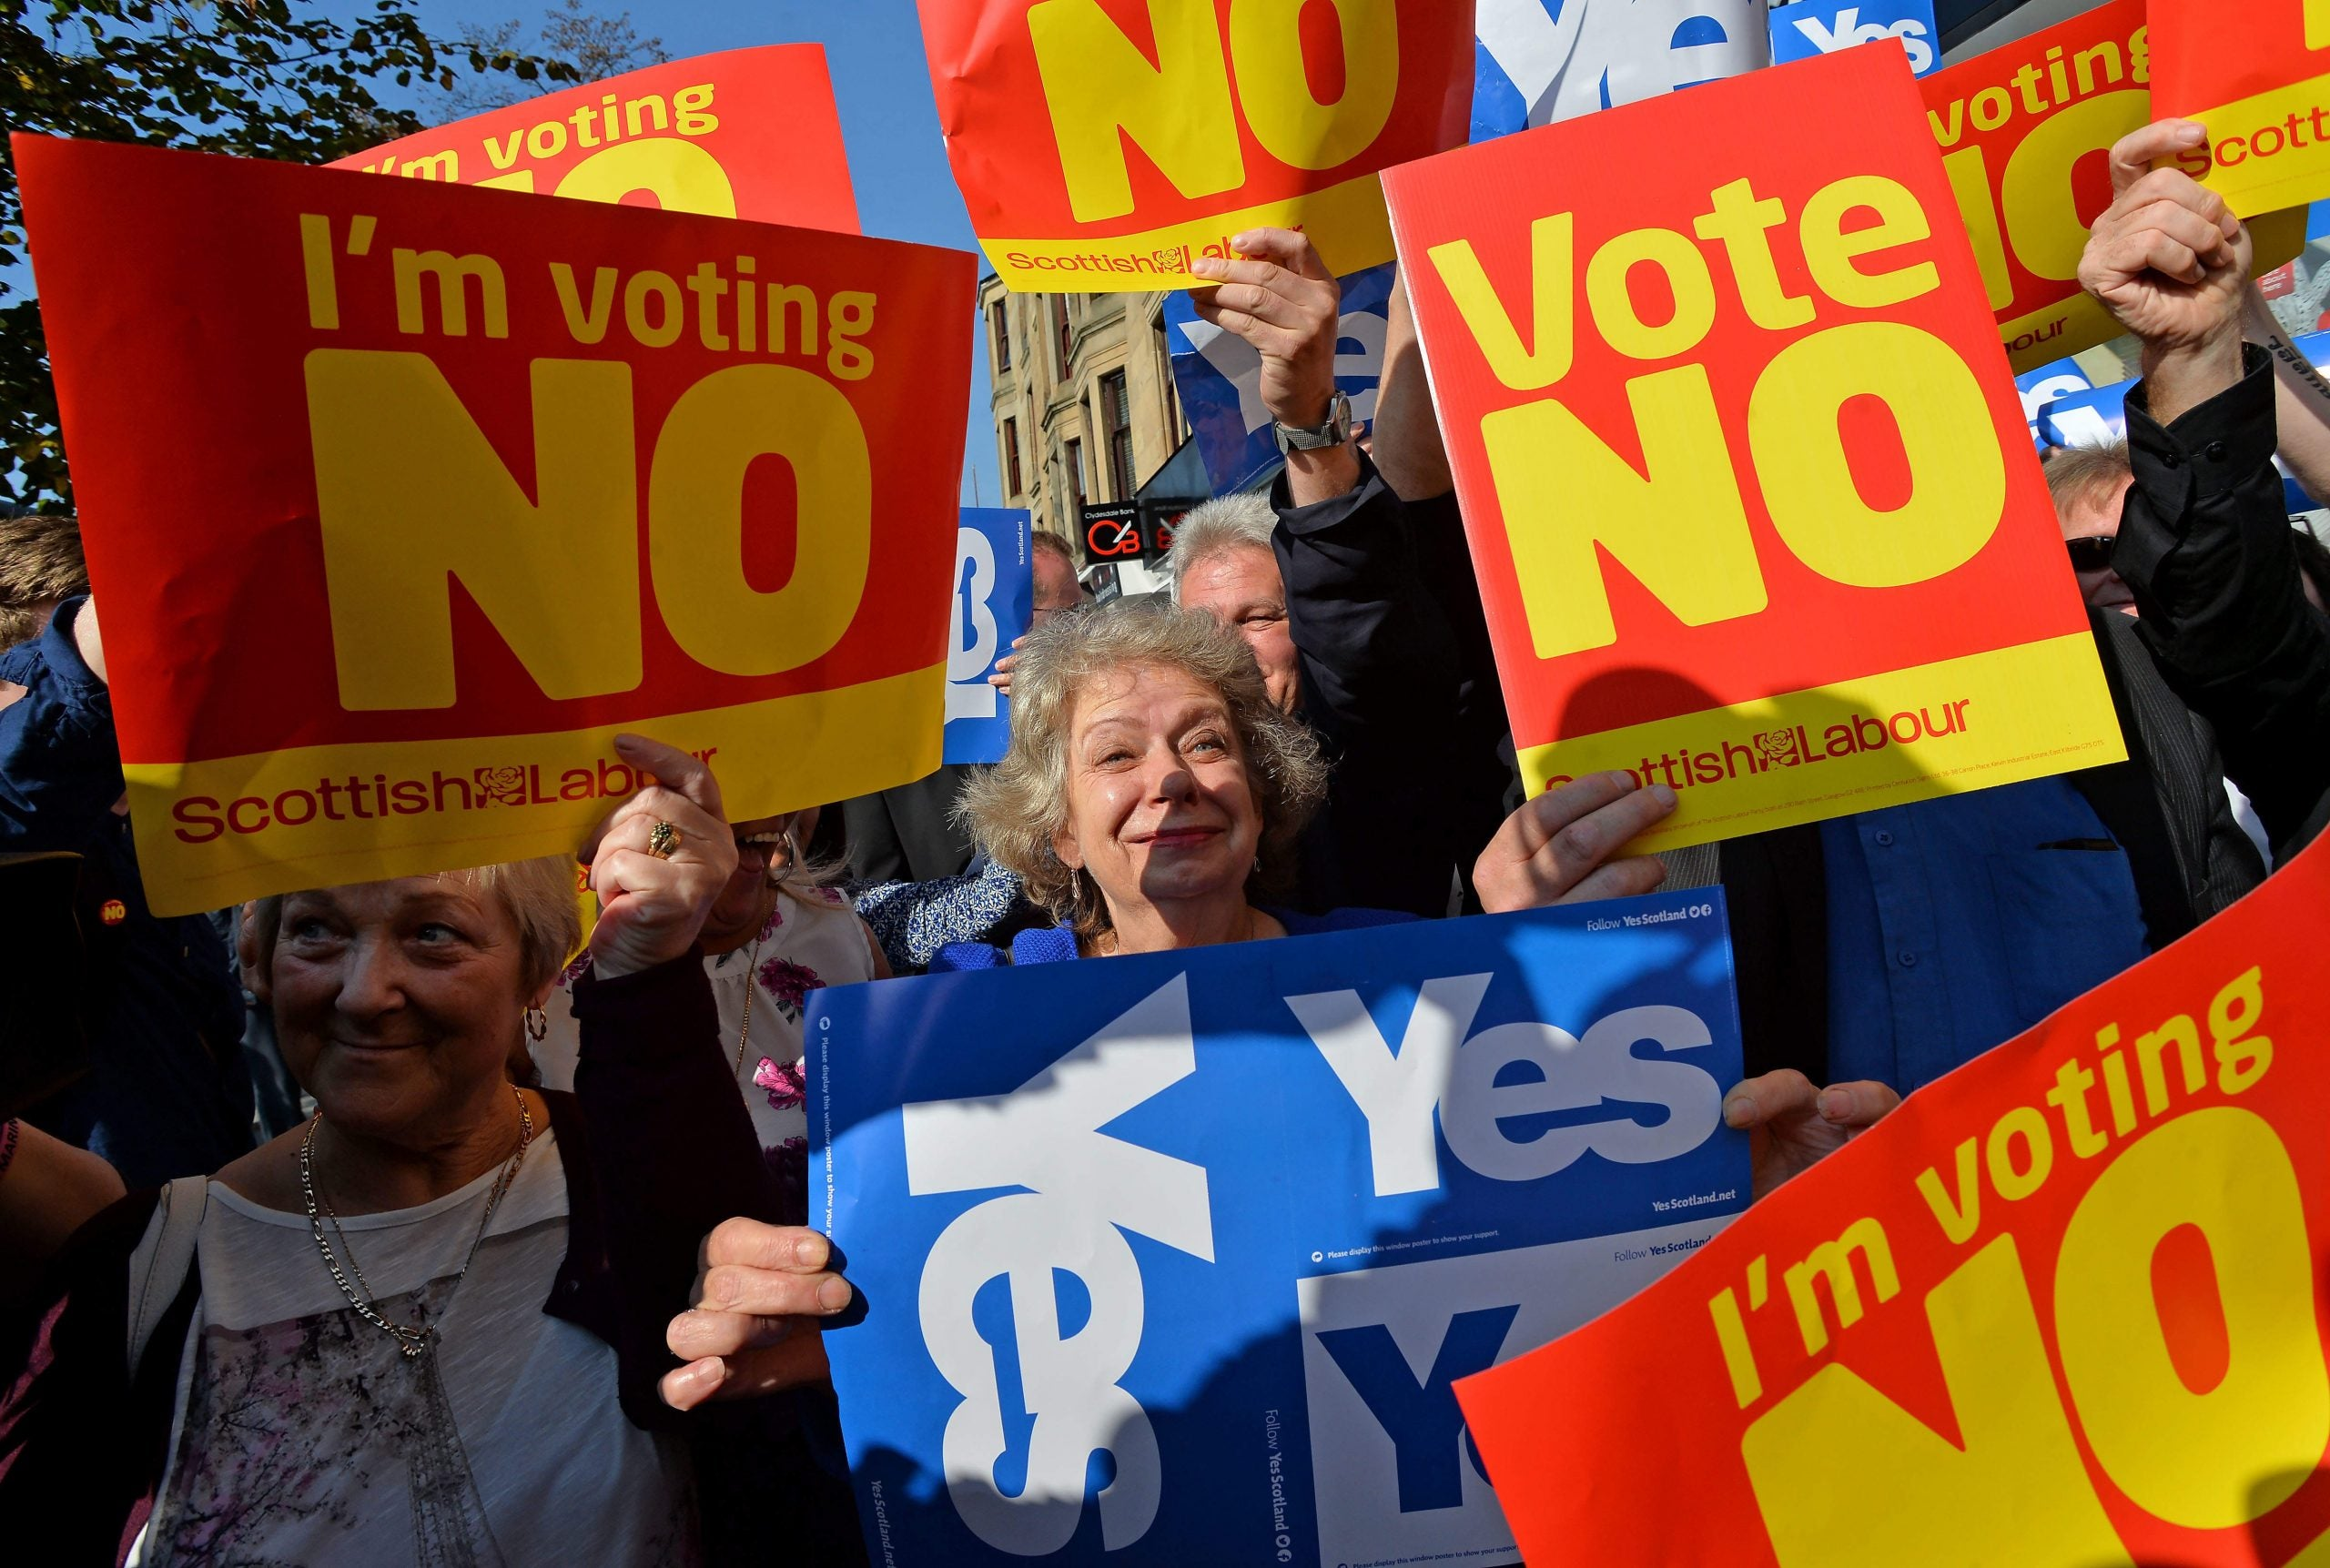 We need a new constitutional settlement - and not just for the Scots